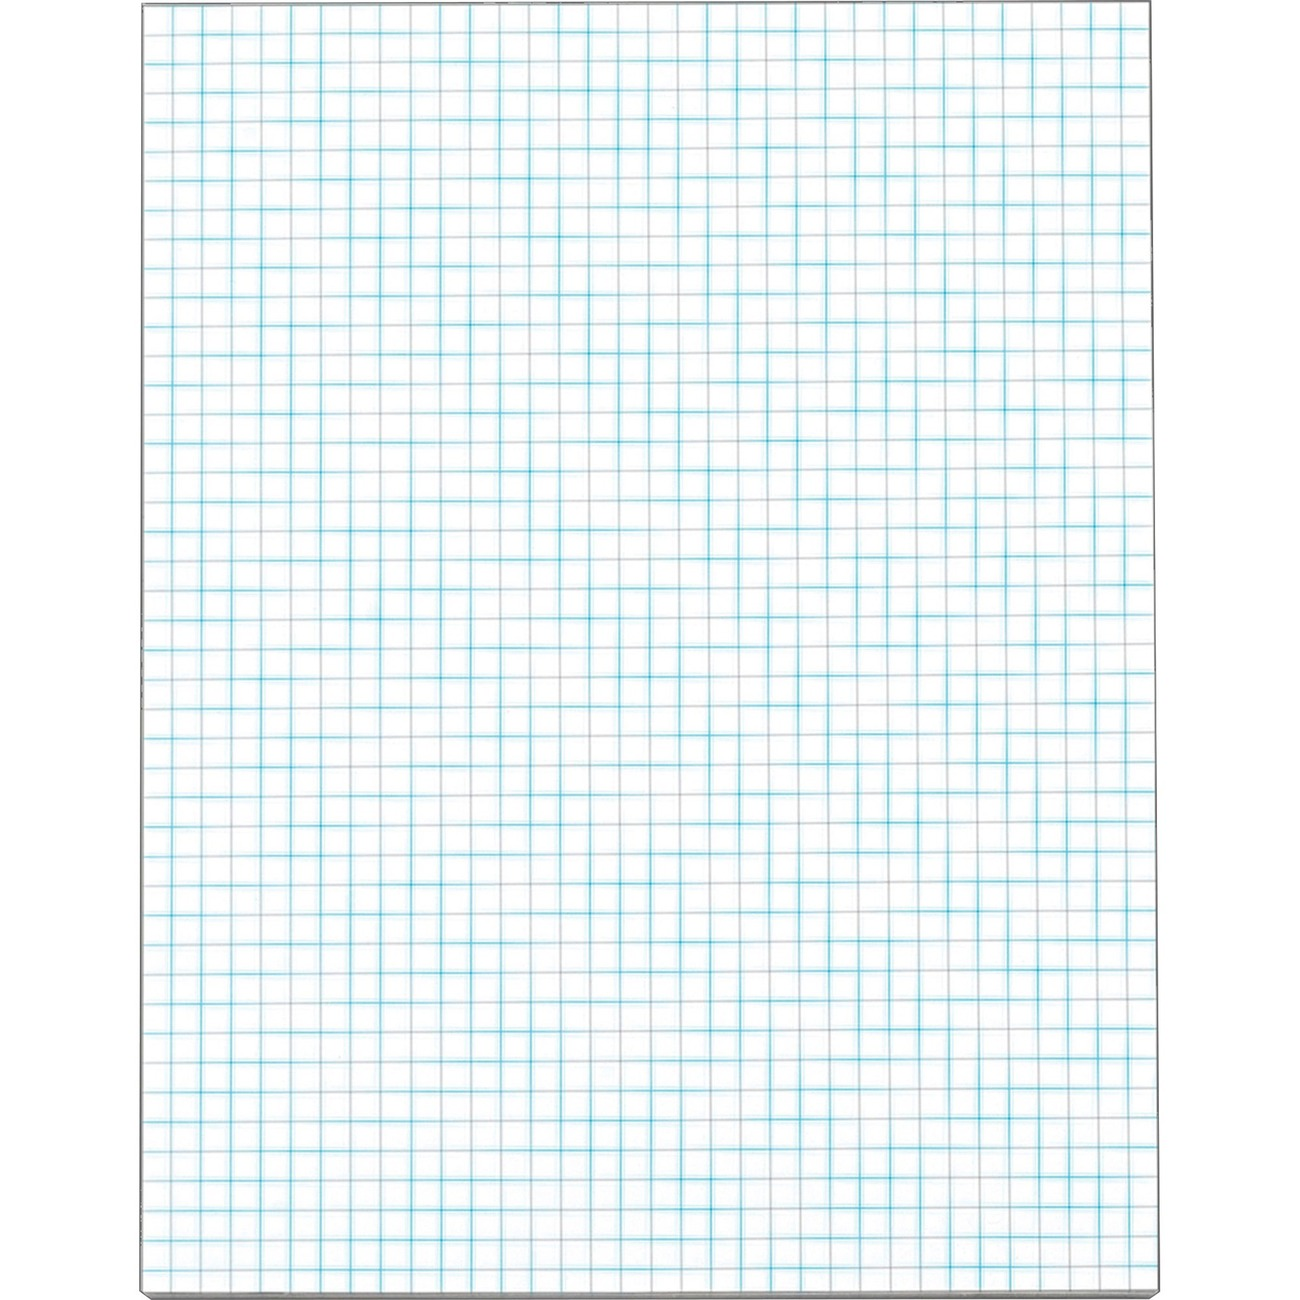 paper pads Detail: 6 ply, tissue pad with poly outer layer size: 58 x 72 pack: 25pc/bundle, 20bnd/skid.